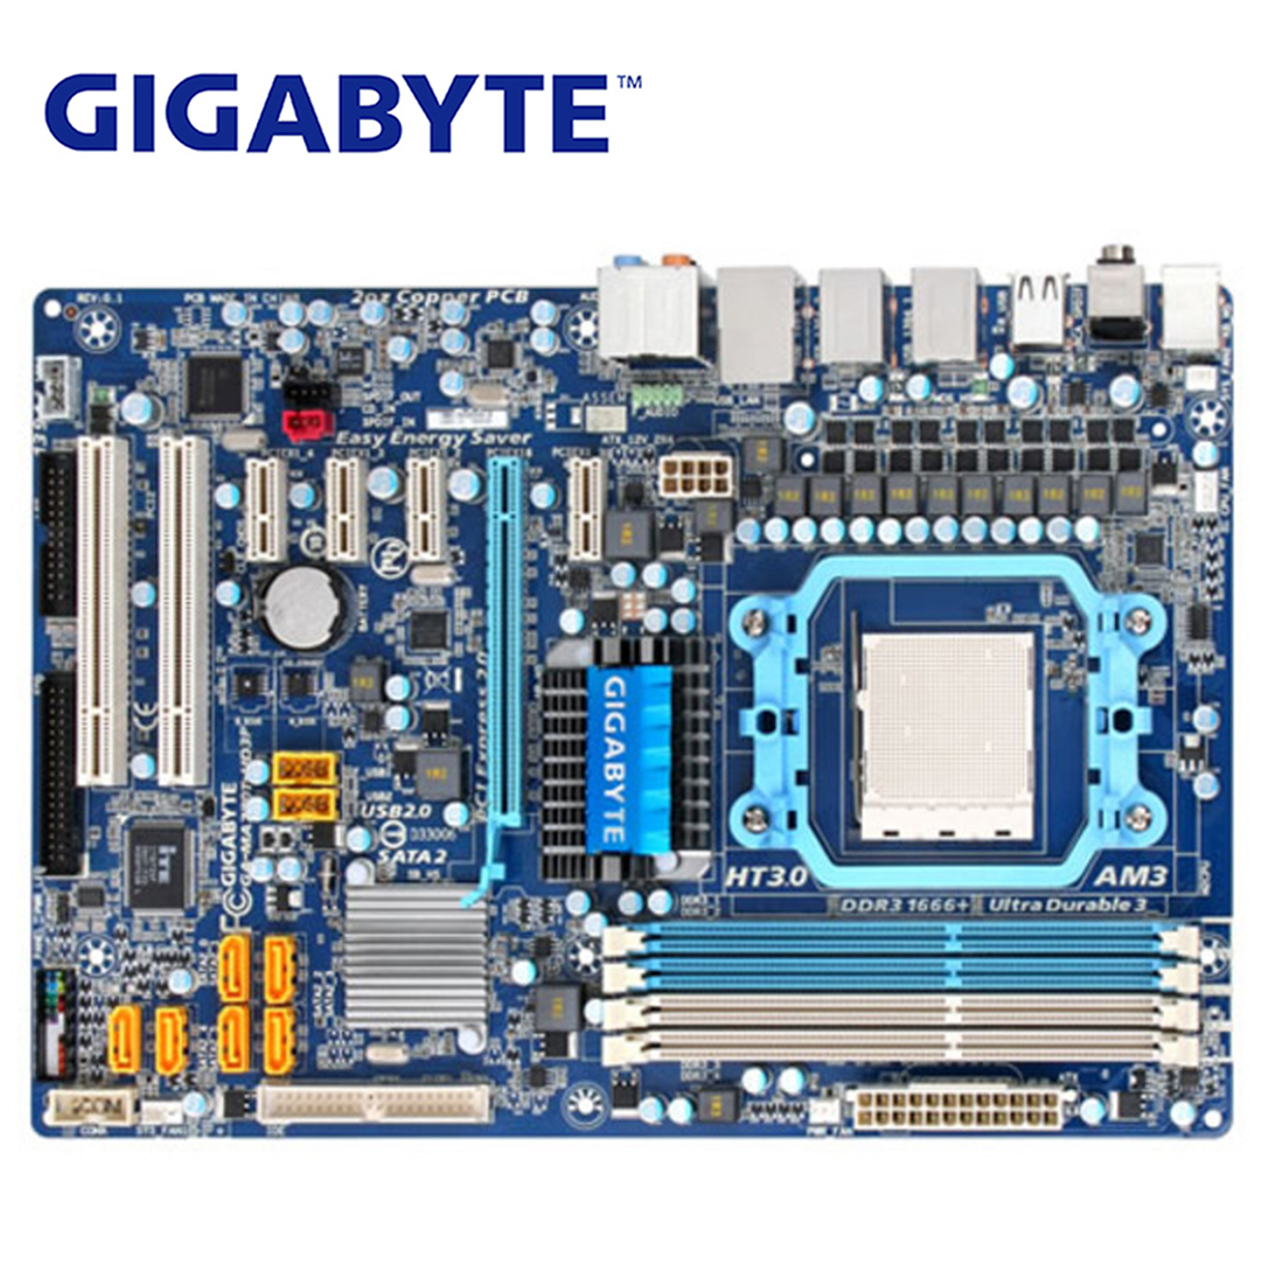 For AMD AM3 Gigabyte GA-MA770T-UD3P Motherboard DDR3 USB2.0 16G Socket MA770T MA 770 770 UD3P Desktop Mainboard Systemboard Used